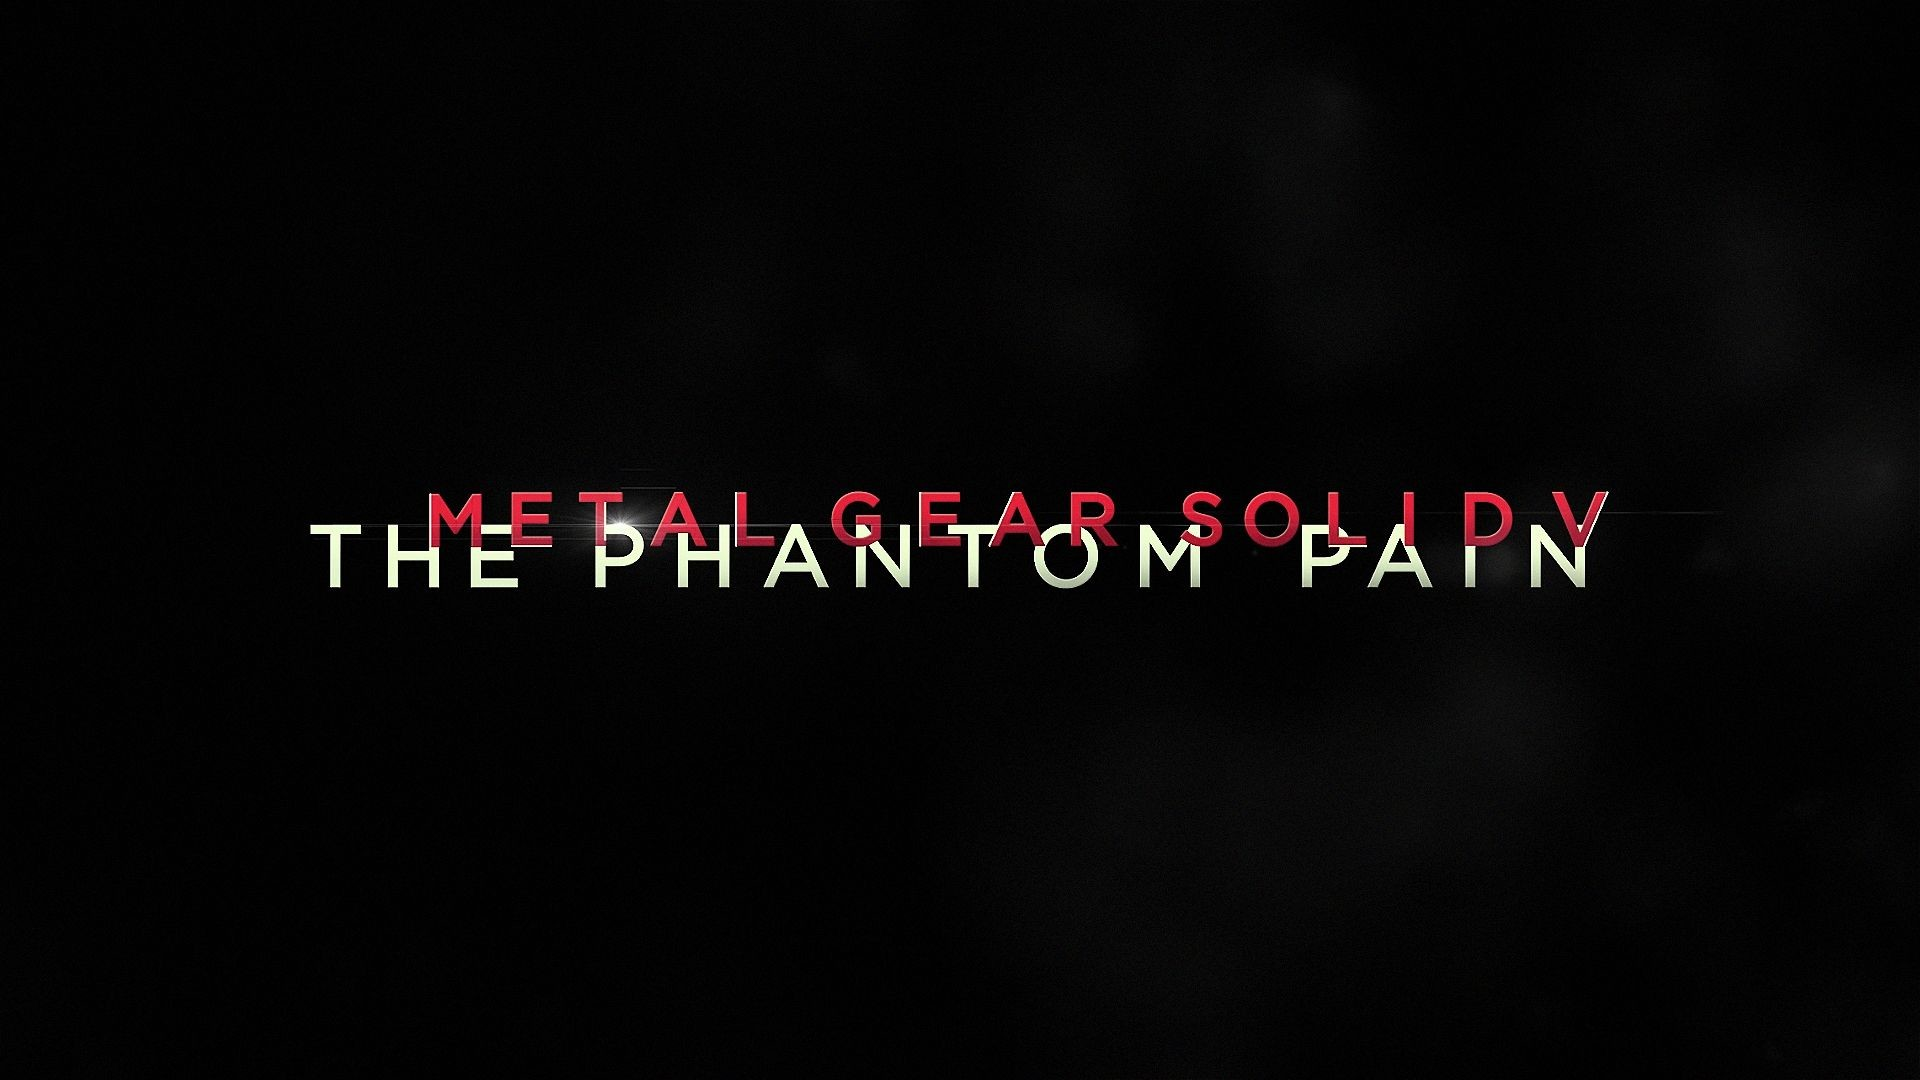 1920x1080 Metal Gear Solid V The Phantom Pain Logo Images & Pictures .